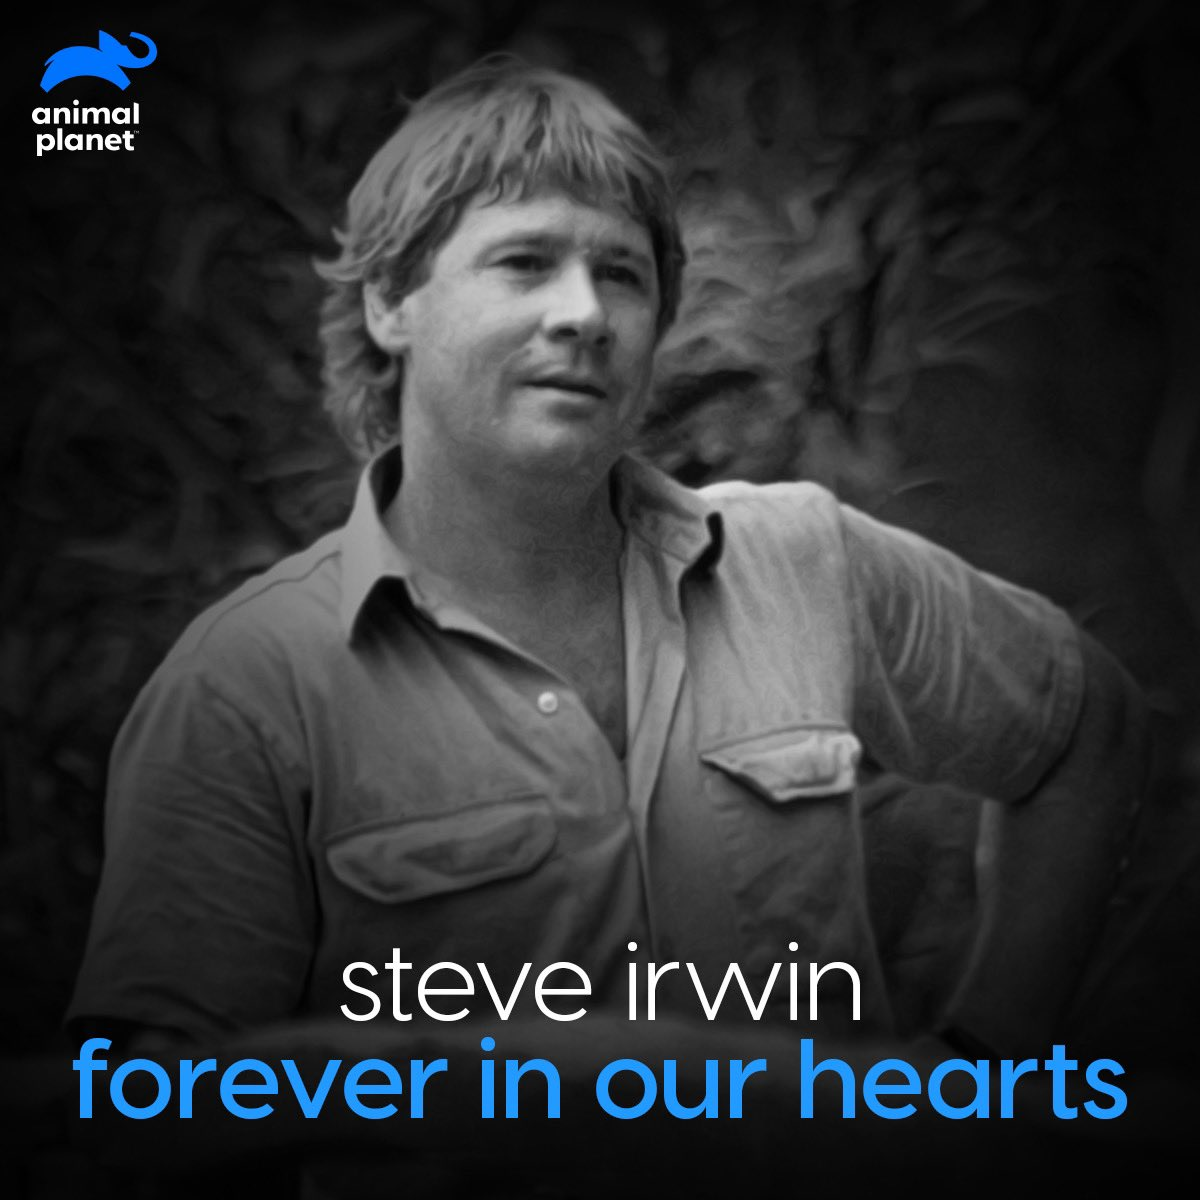 Animal Planet India On Twitter We Have Steve Irwin To Thank For The Fire Of Hope He Ignited In The Minds Of Wildlife Lovers We Are Forever Grateful For His Compassion Towards